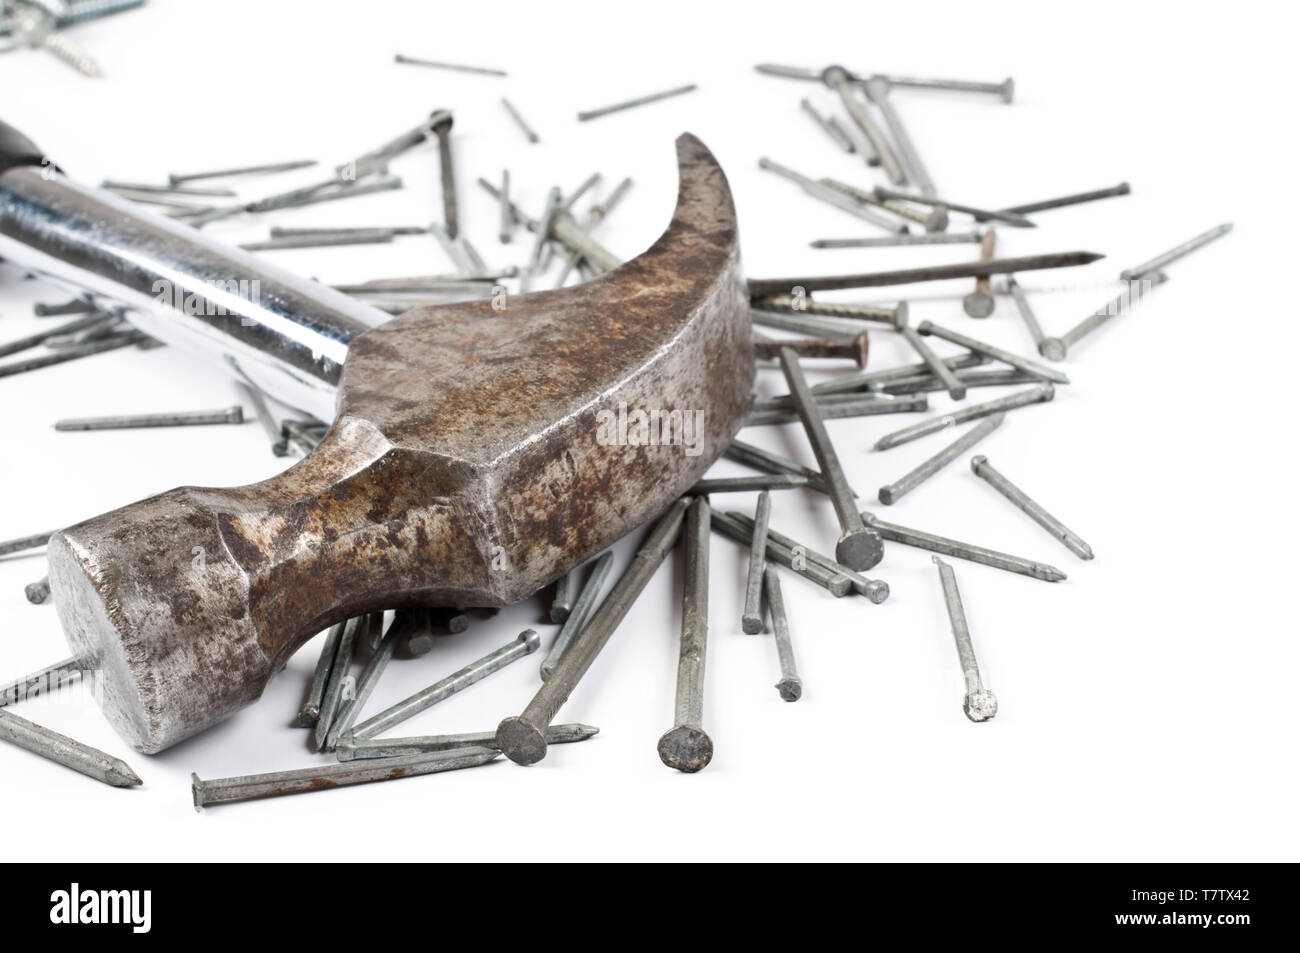 Claw hammer and nails on white background. - Stock Image